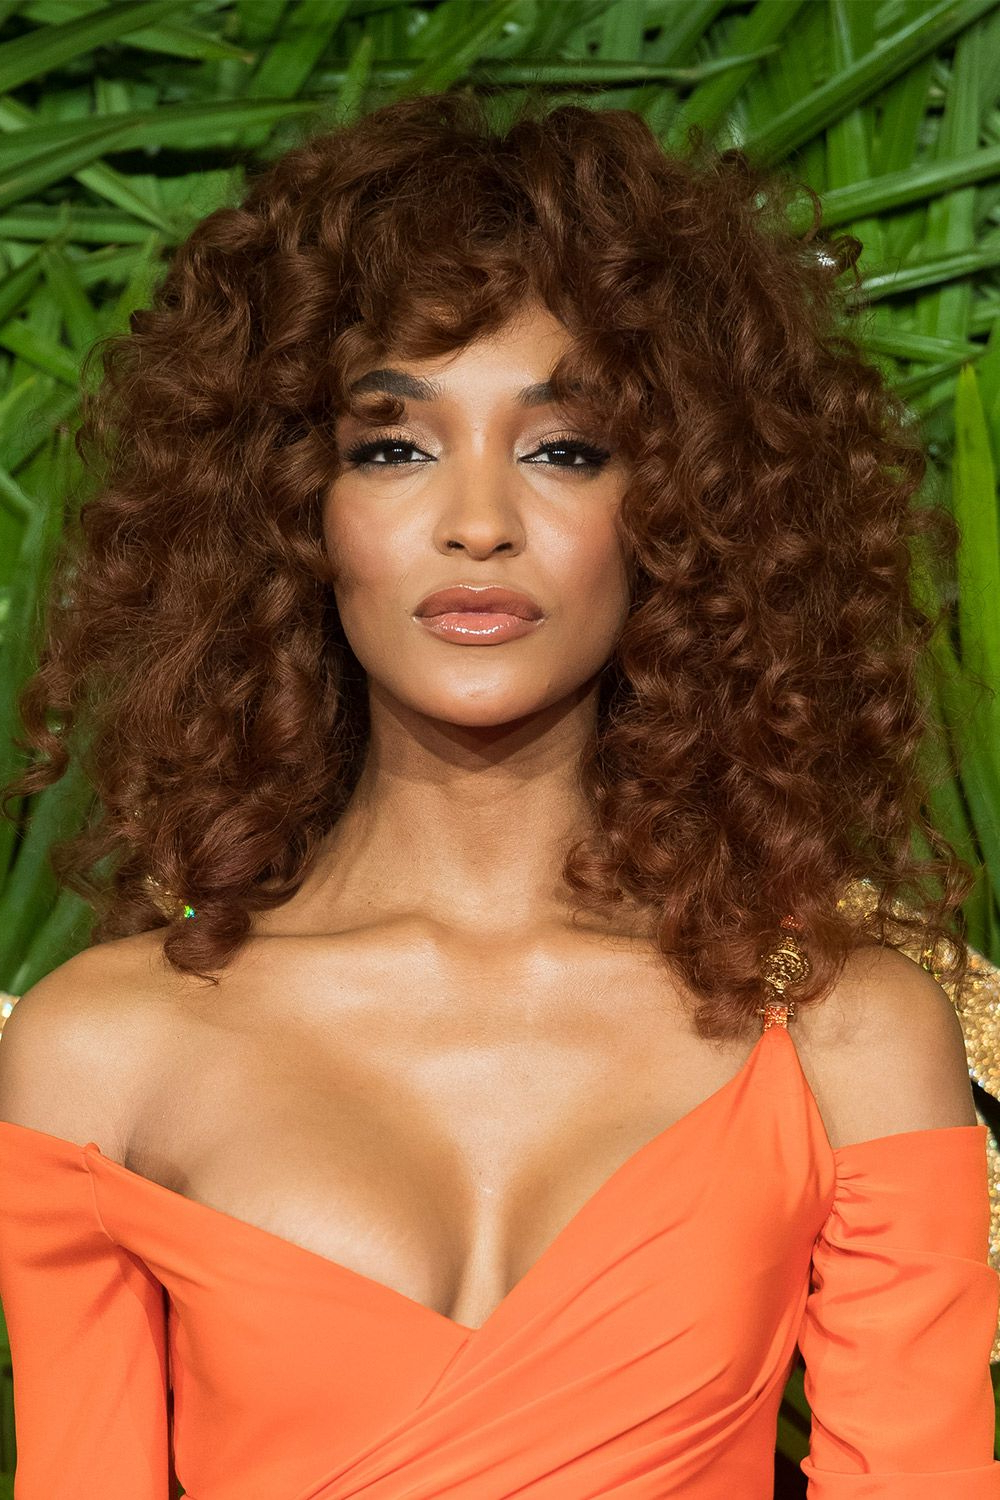 2020 Shiny Tousled Curls Hairstyles Pertaining To 55 Best Curly Hairstyles Of 2018 – Cute Hairstyles For Curly Hair To (Gallery 9 of 20)